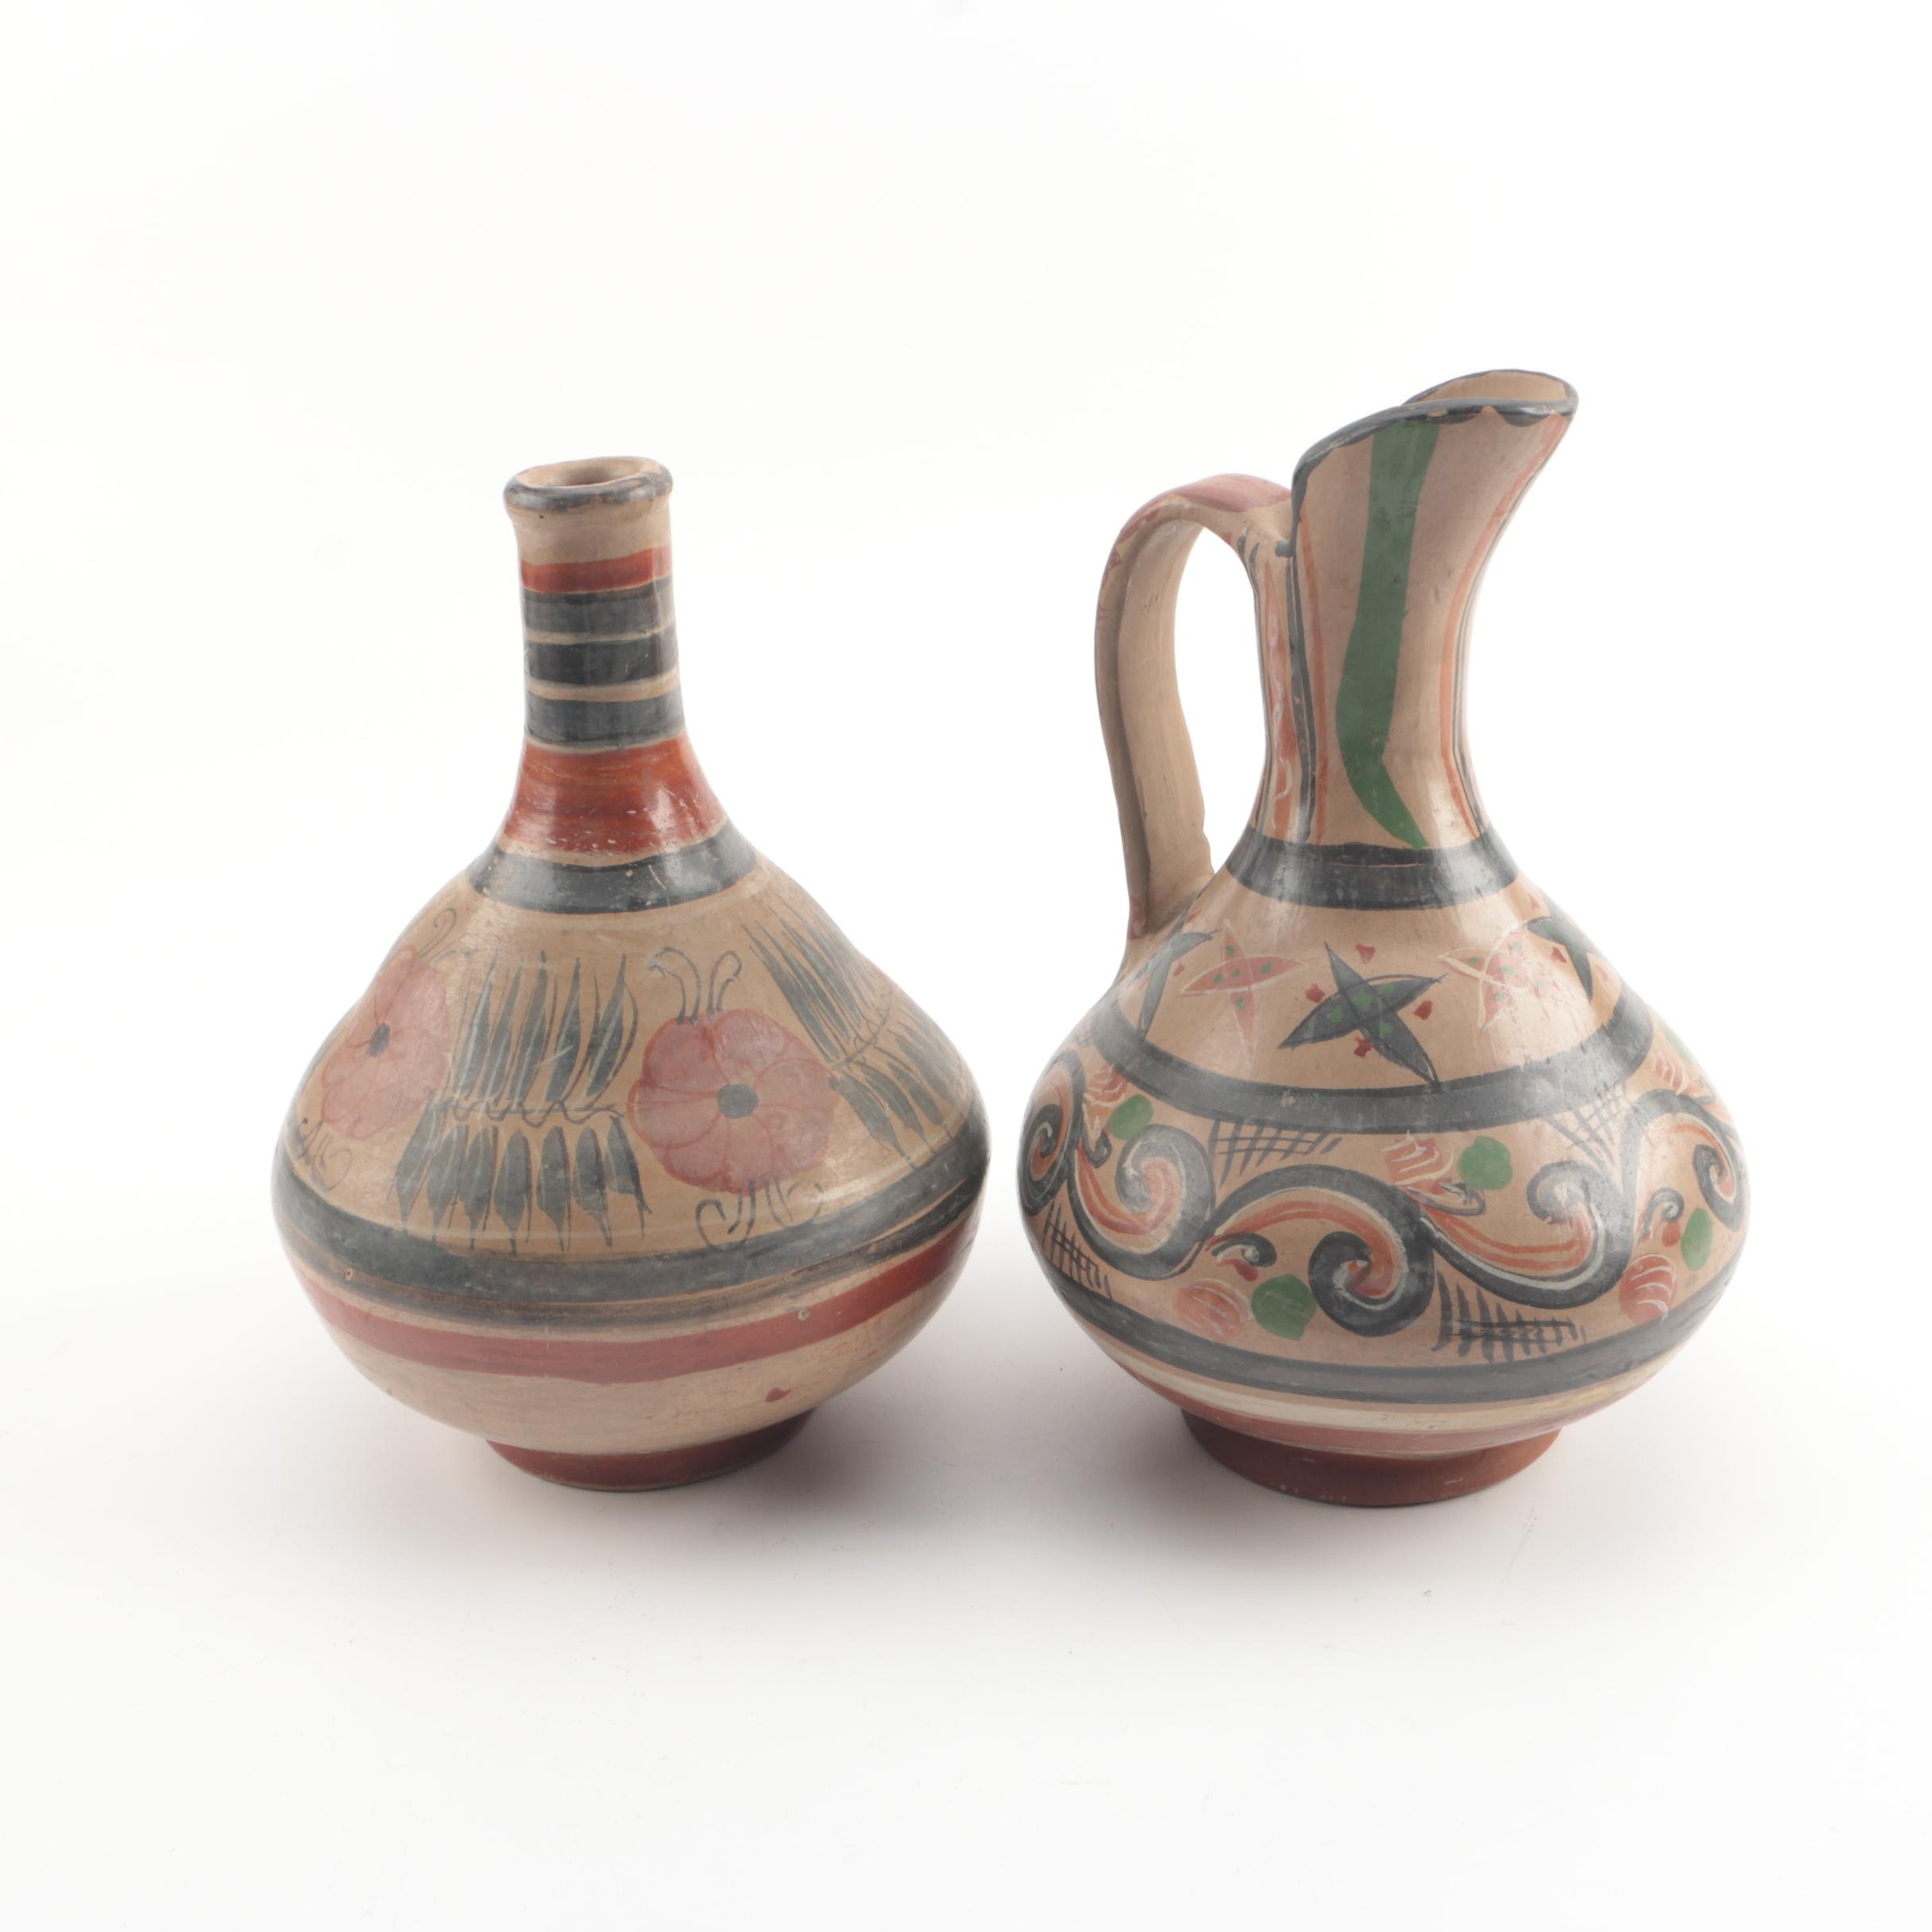 Vintage Tonala Style Vase and Pitcher